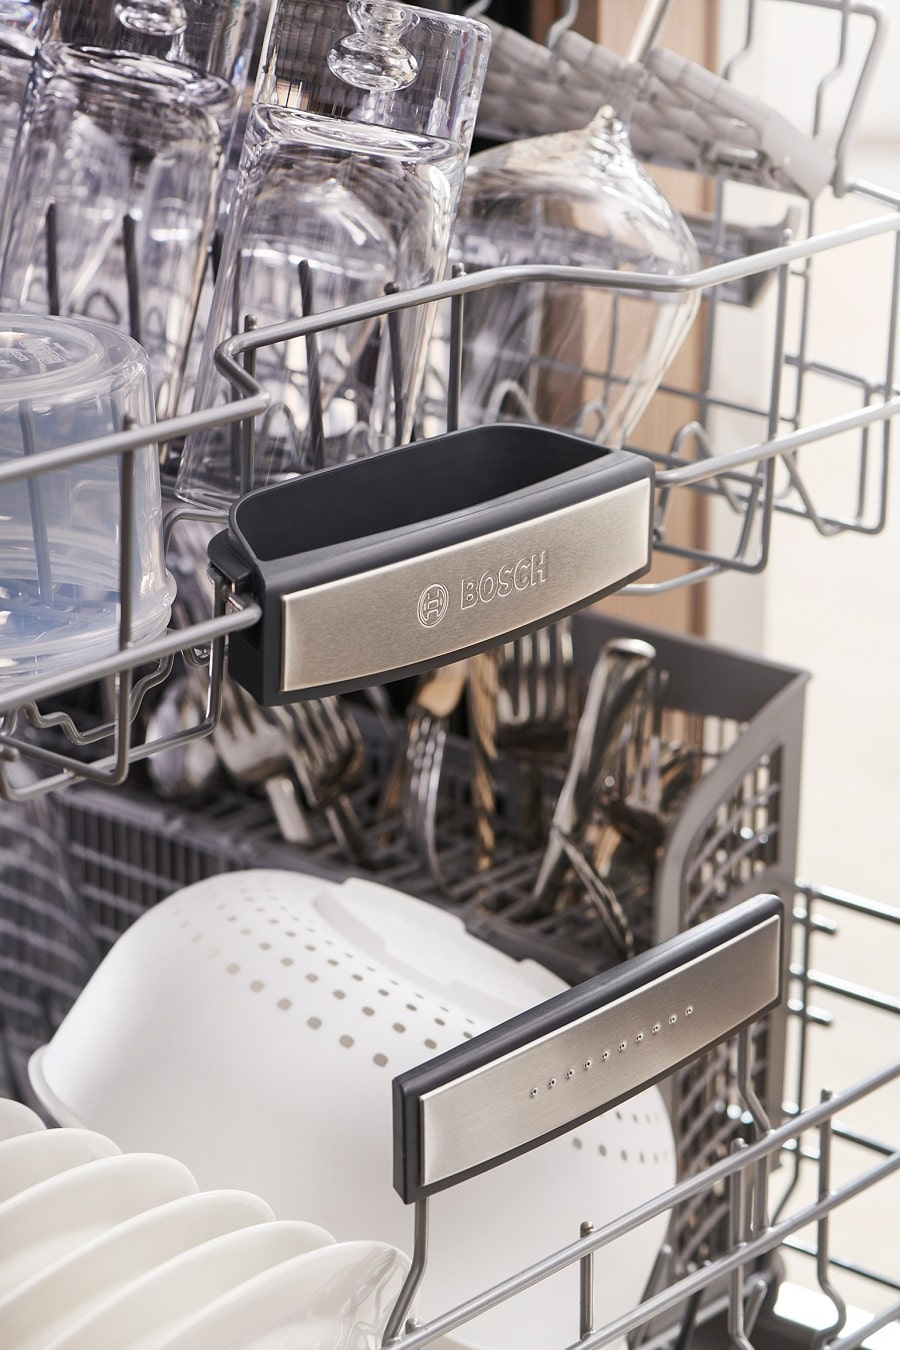 The New Bosch 800 Series Dishwasher With New CrystalDry™ Is Now Available At Best Buy